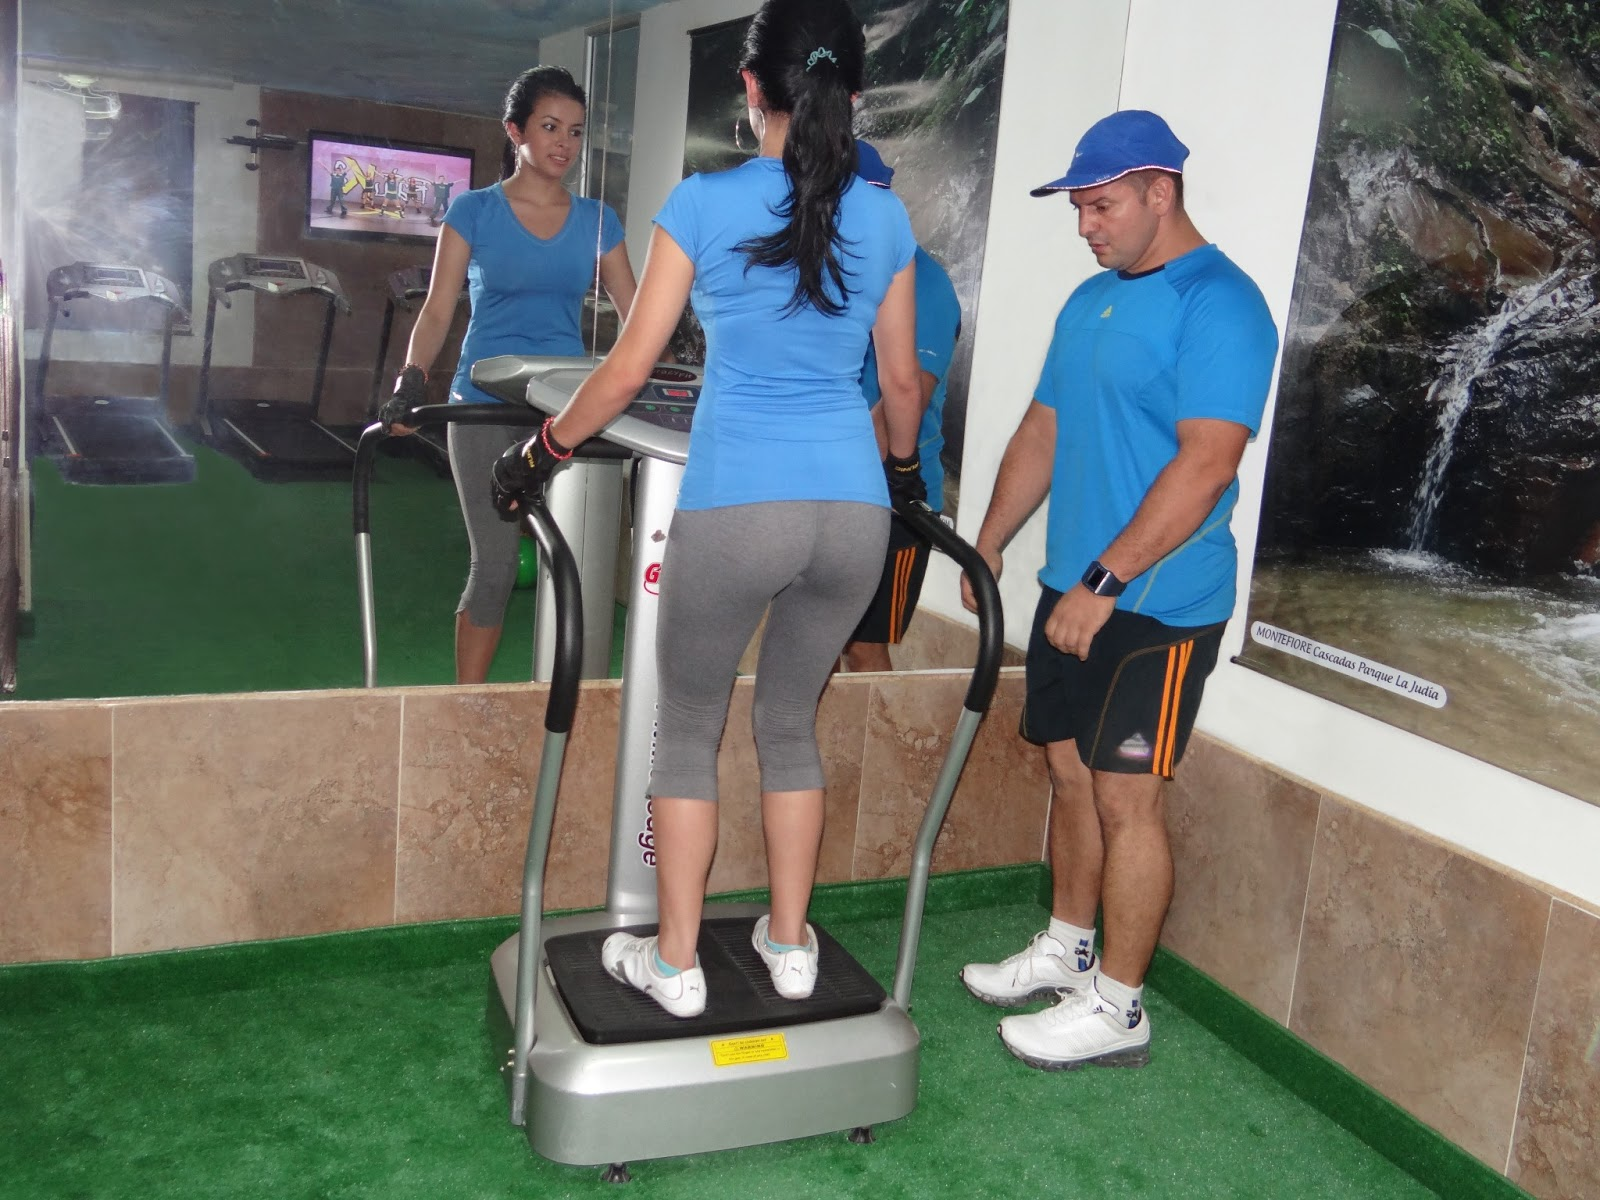 Aparato Gimnasia Pasiva Masso Personal Training And Stetic Spa